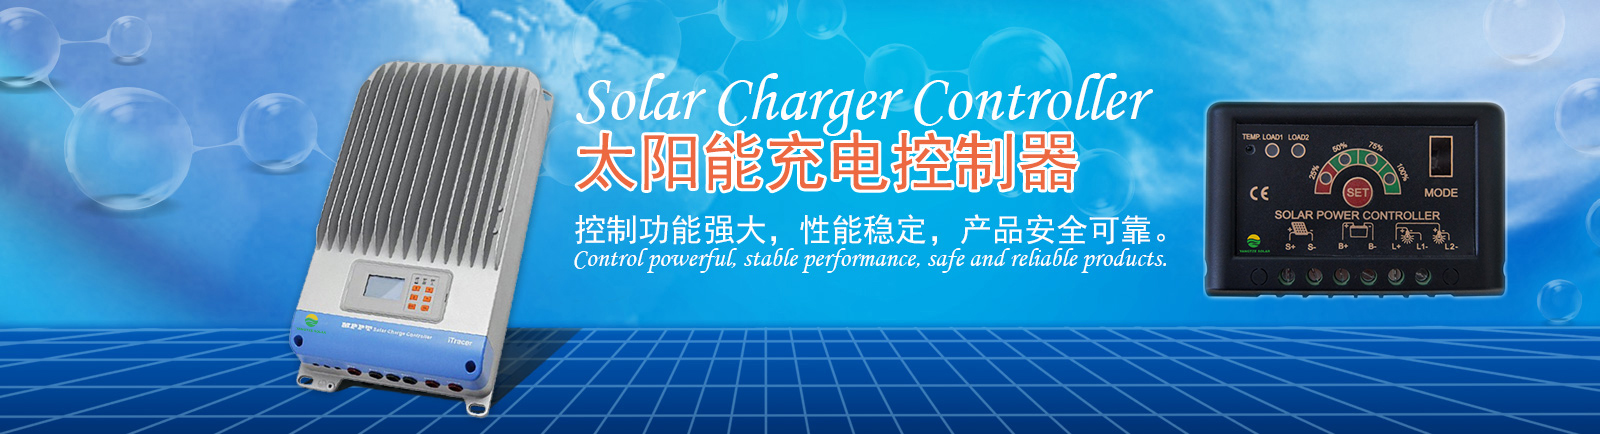 Yangtze Solar Power Co.,Ltd